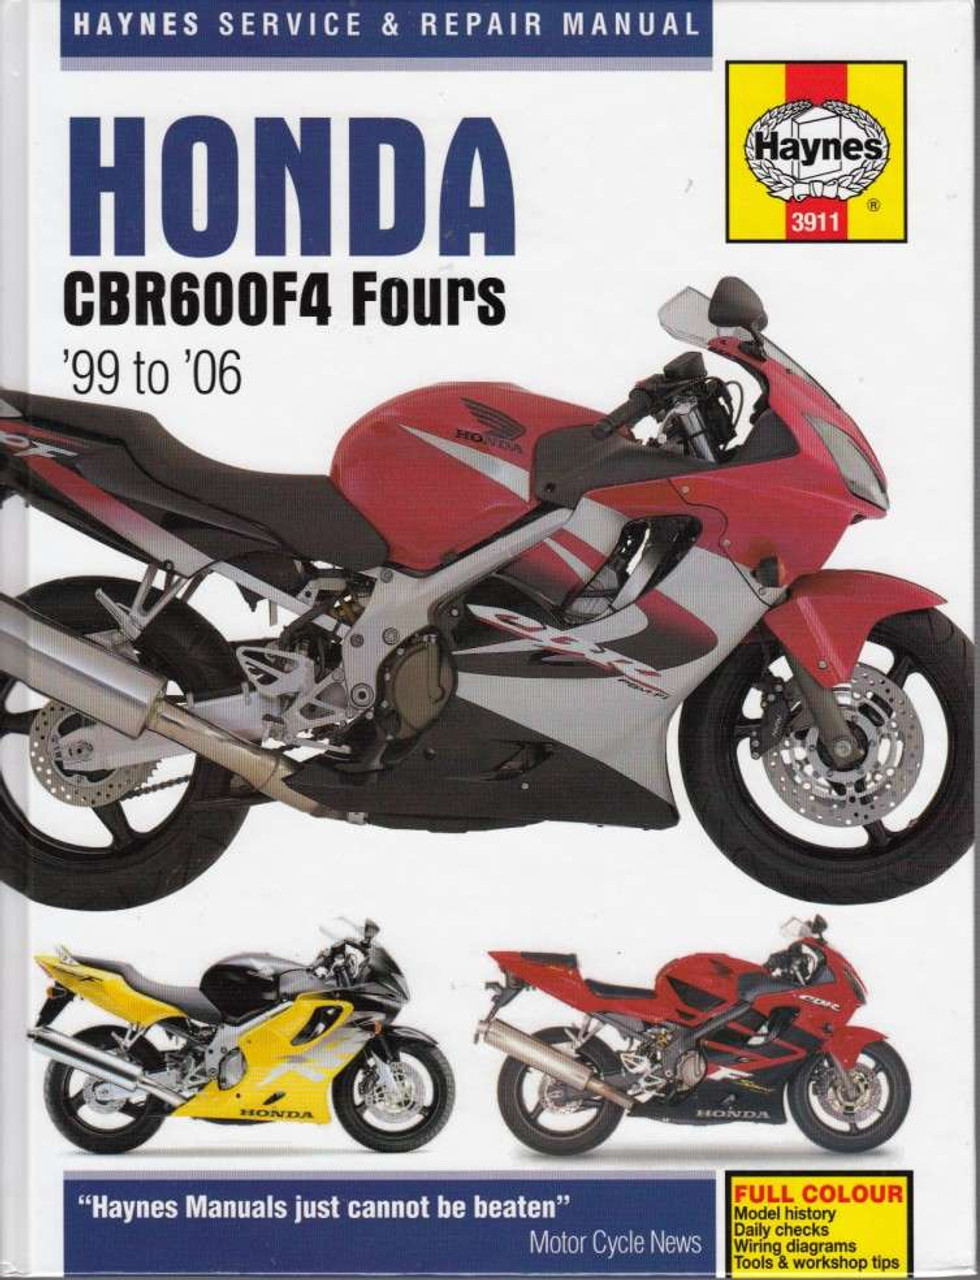 medium resolution of b8617b honda cbr600f4 fours repair manual 35474 1374803340 jpg c 2 imbypass on imbypass on